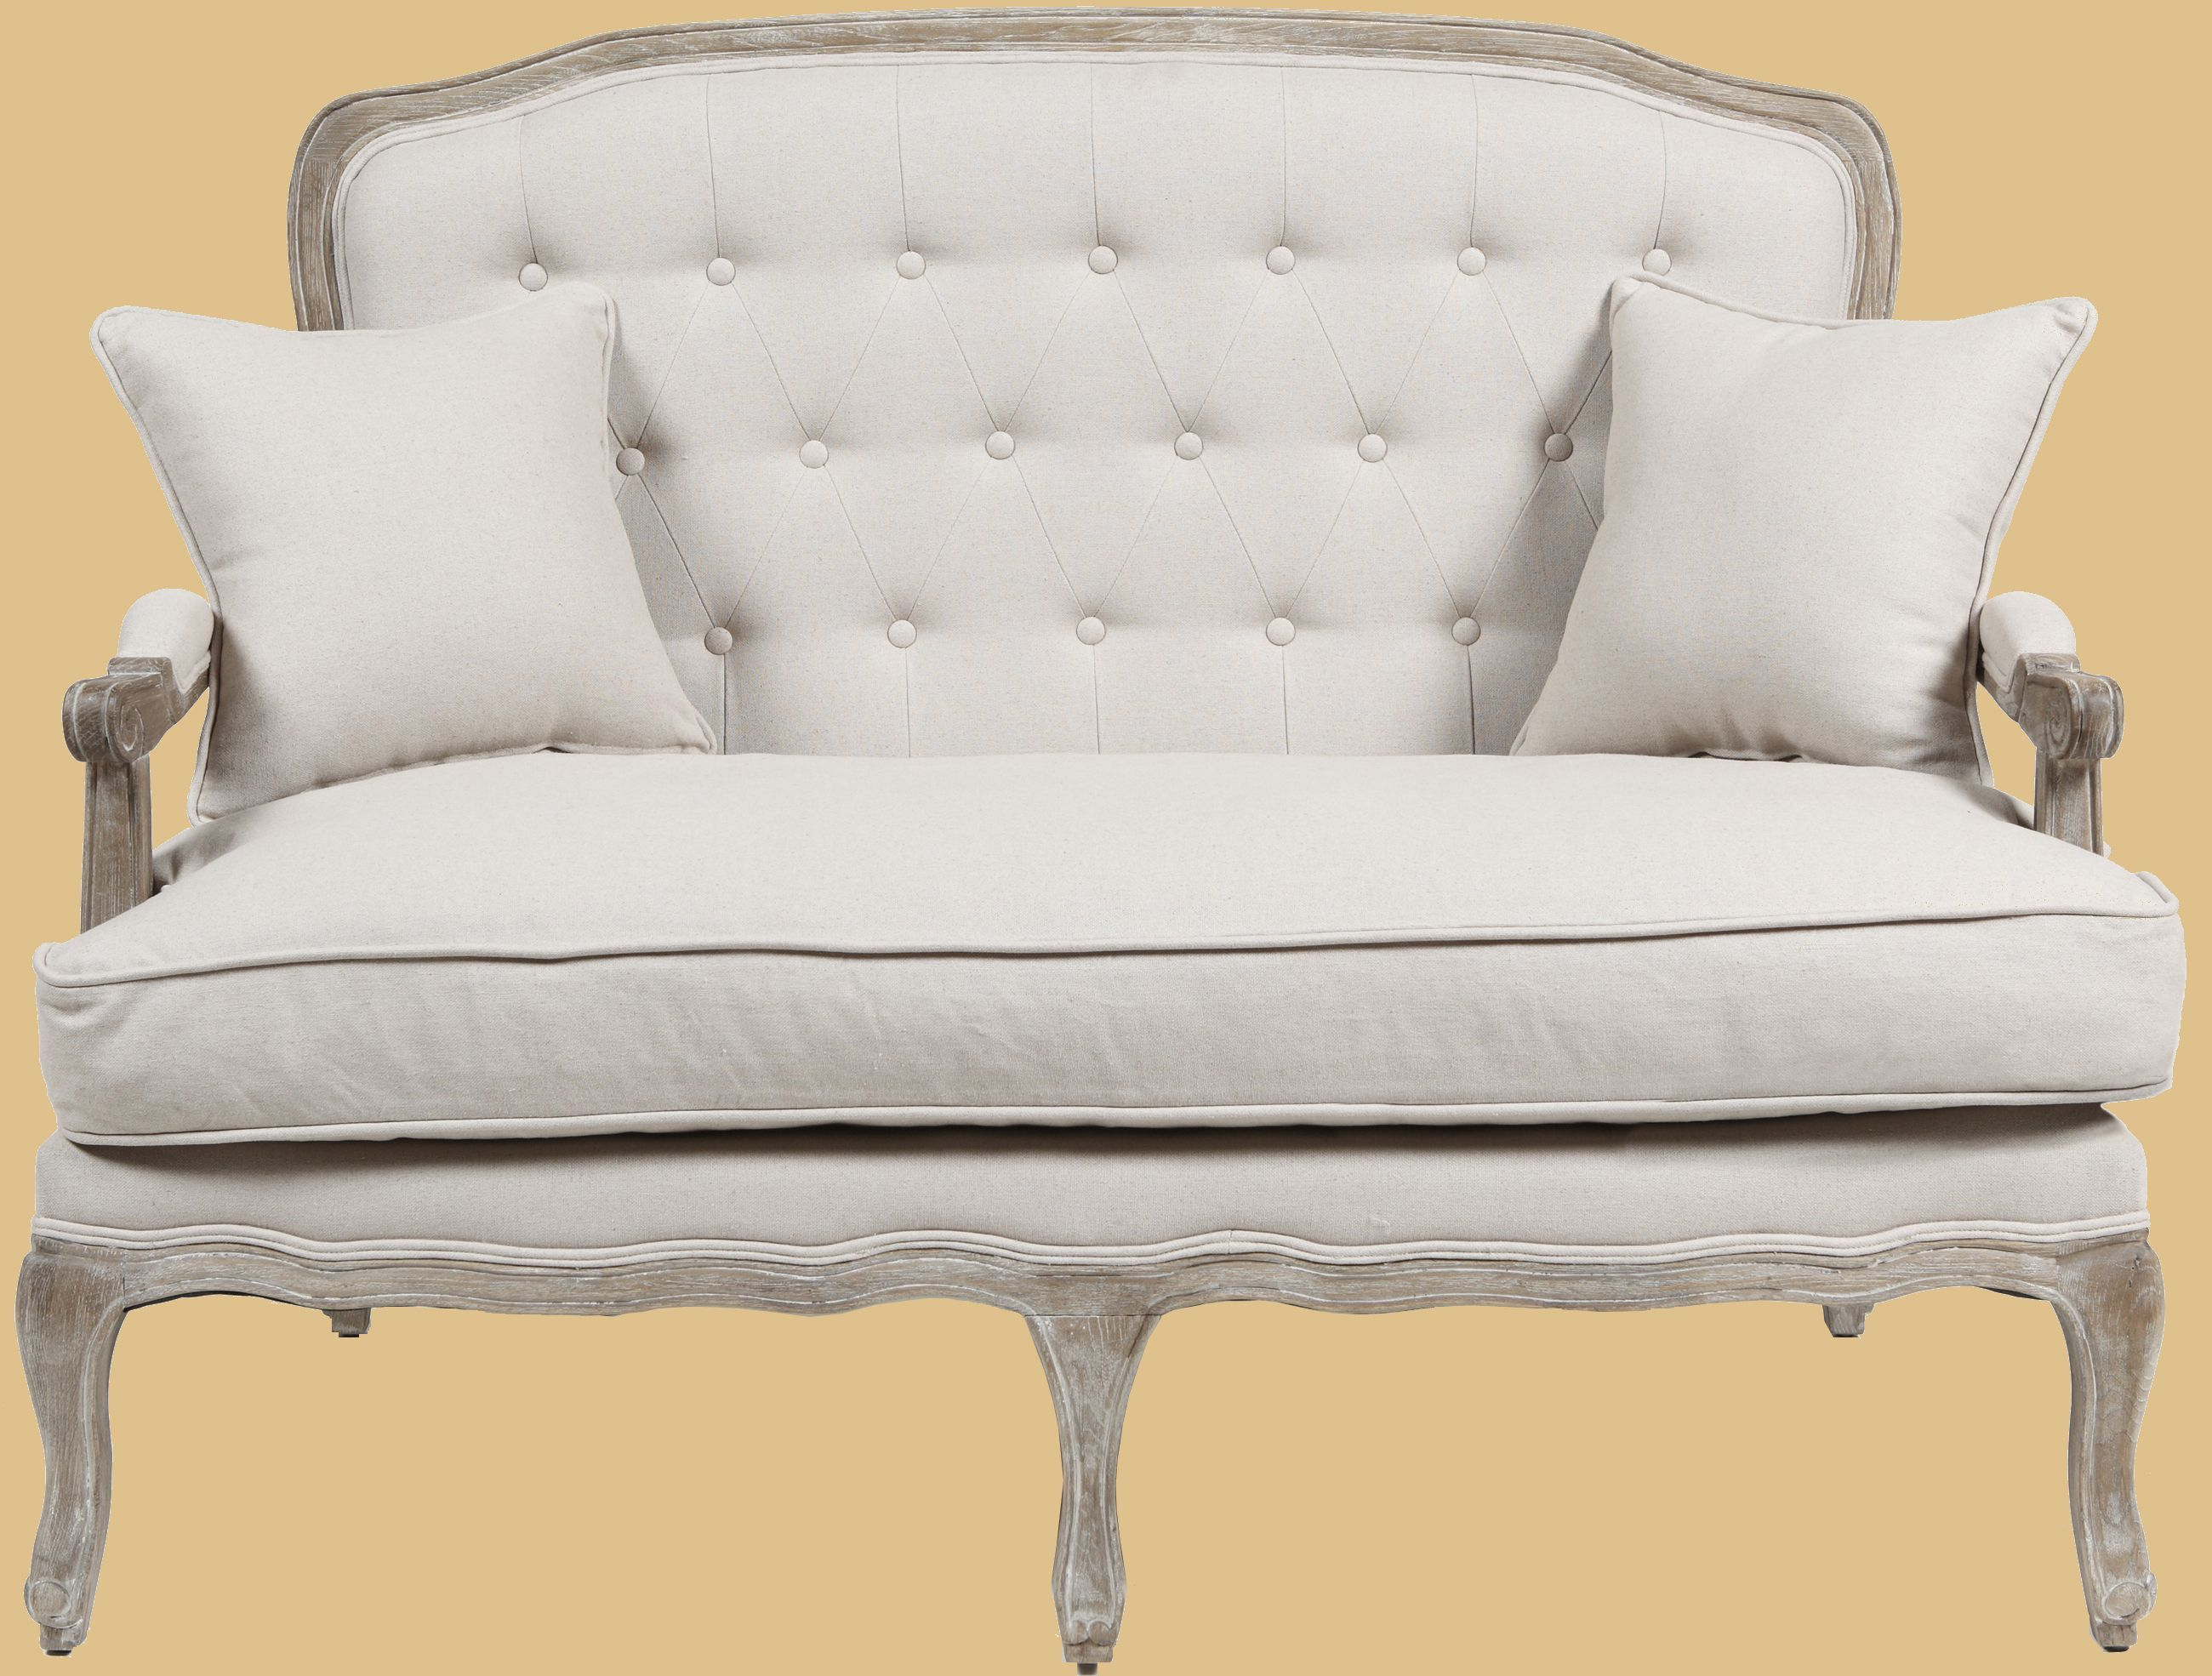 Armless Settee Bench Part - 15: ... Dining Room Settee This G Euos Tufted Settee Is Exactly What Is Missing  From Your ...